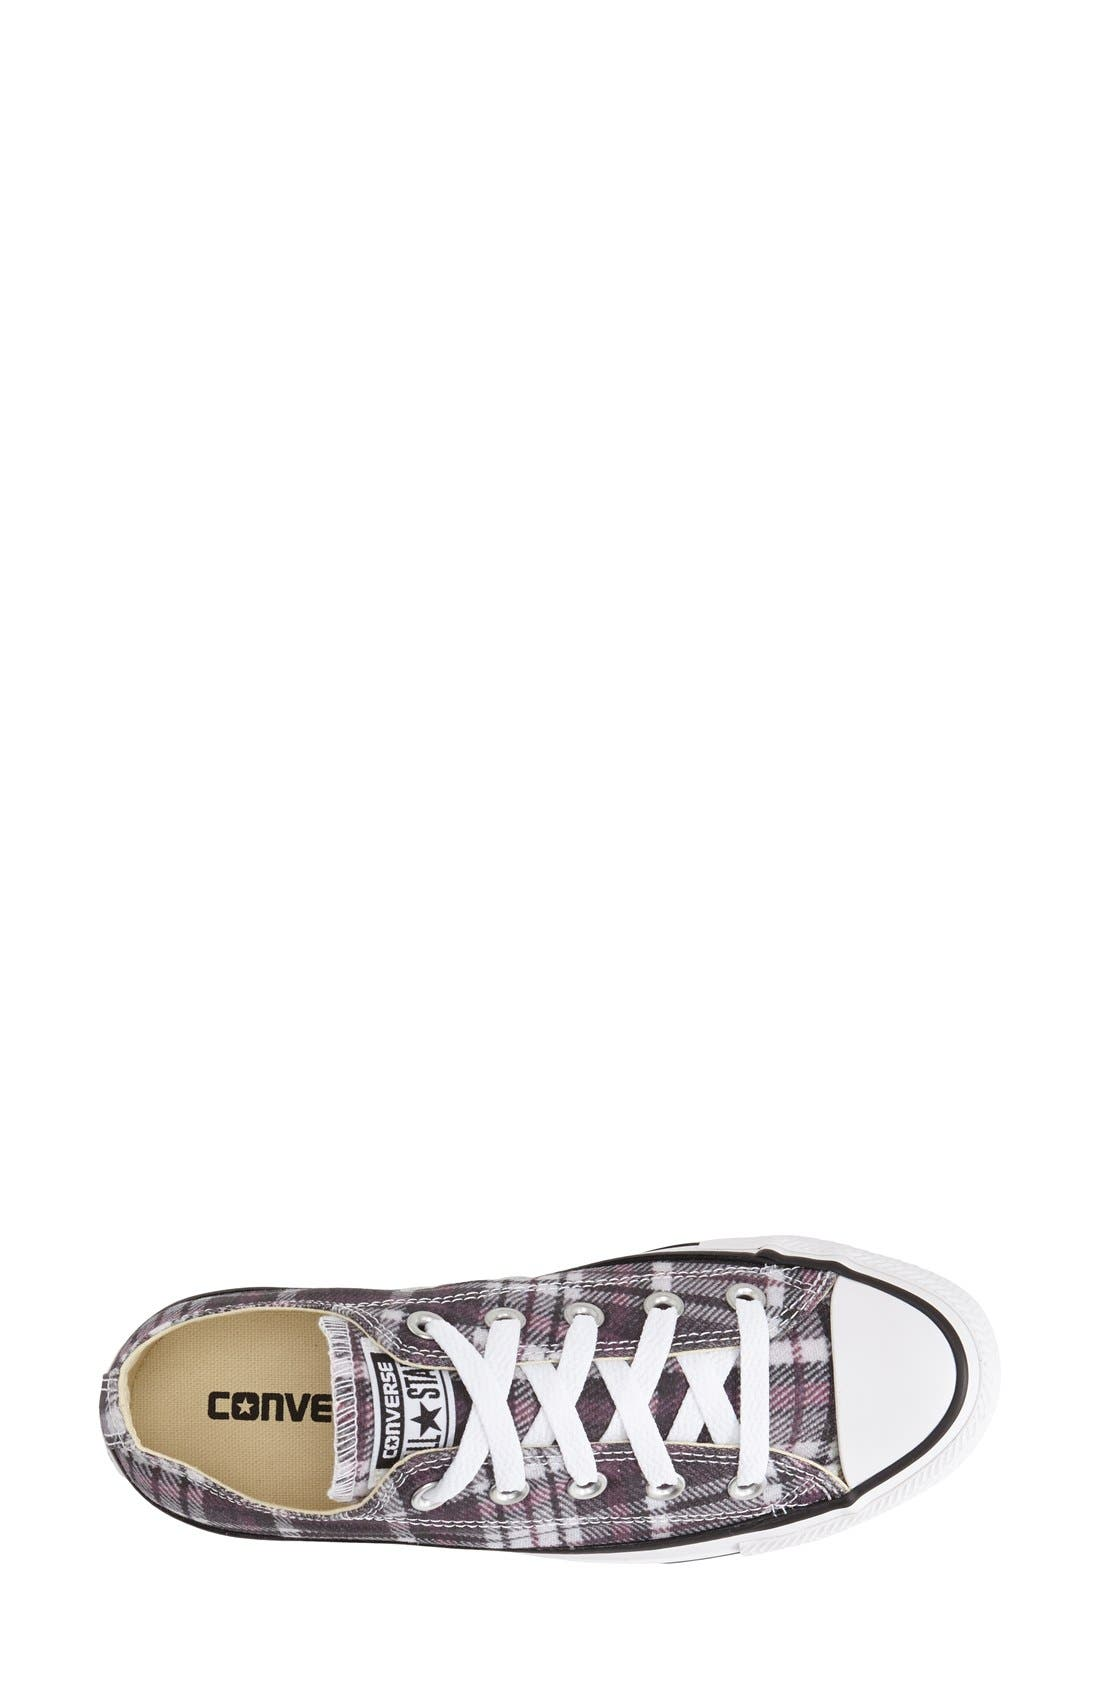 Alternate Image 3  - Converse Chuck Taylor® All Star® Plaid Low Top Sneaker (Women)